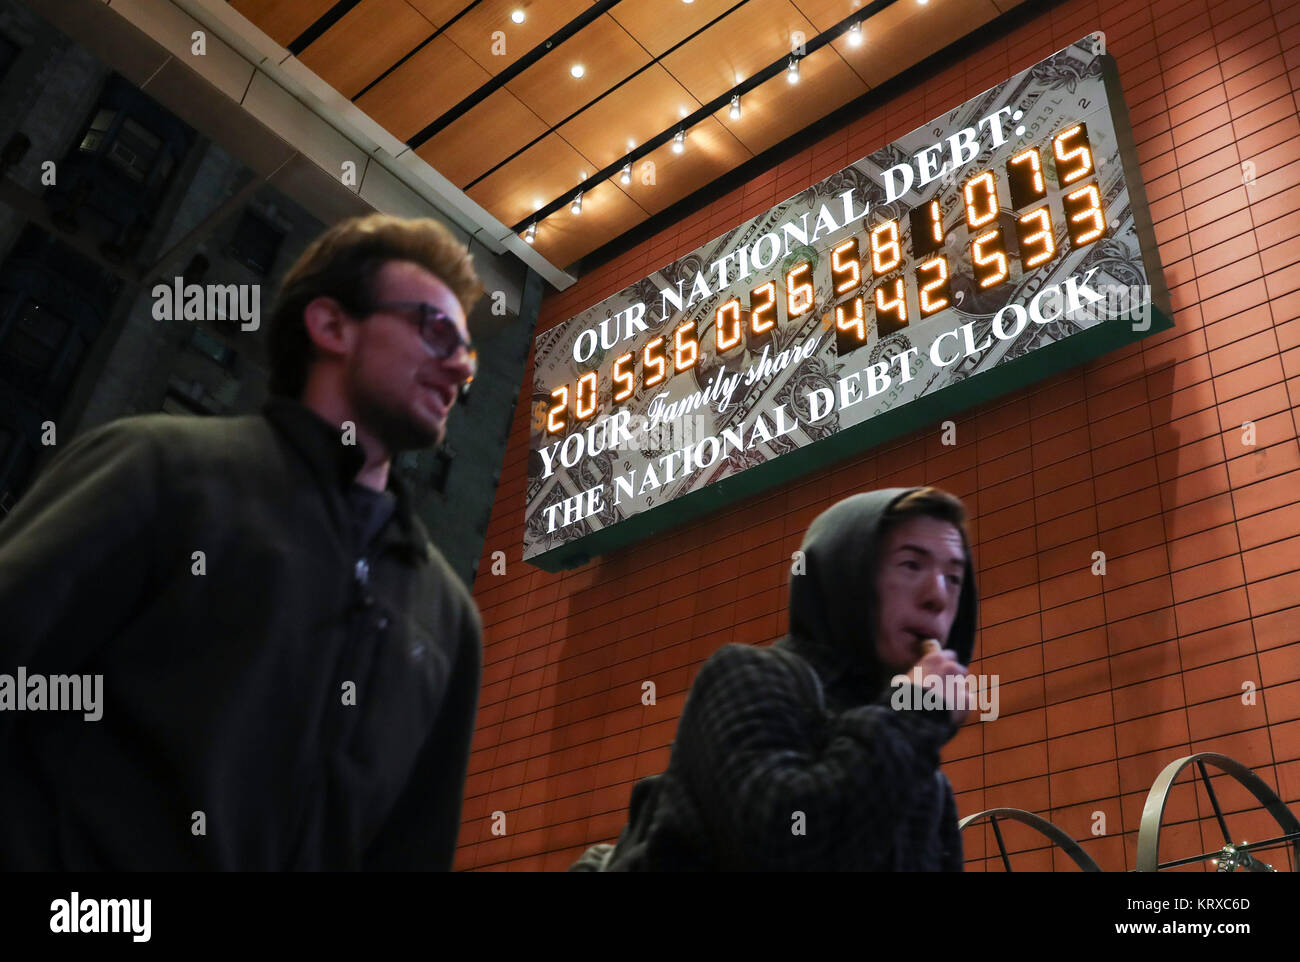 New York, USA. 20th Dec, 2017. People pass by the National Debt Clock in Manhattan of New York City, the United - Stock Image